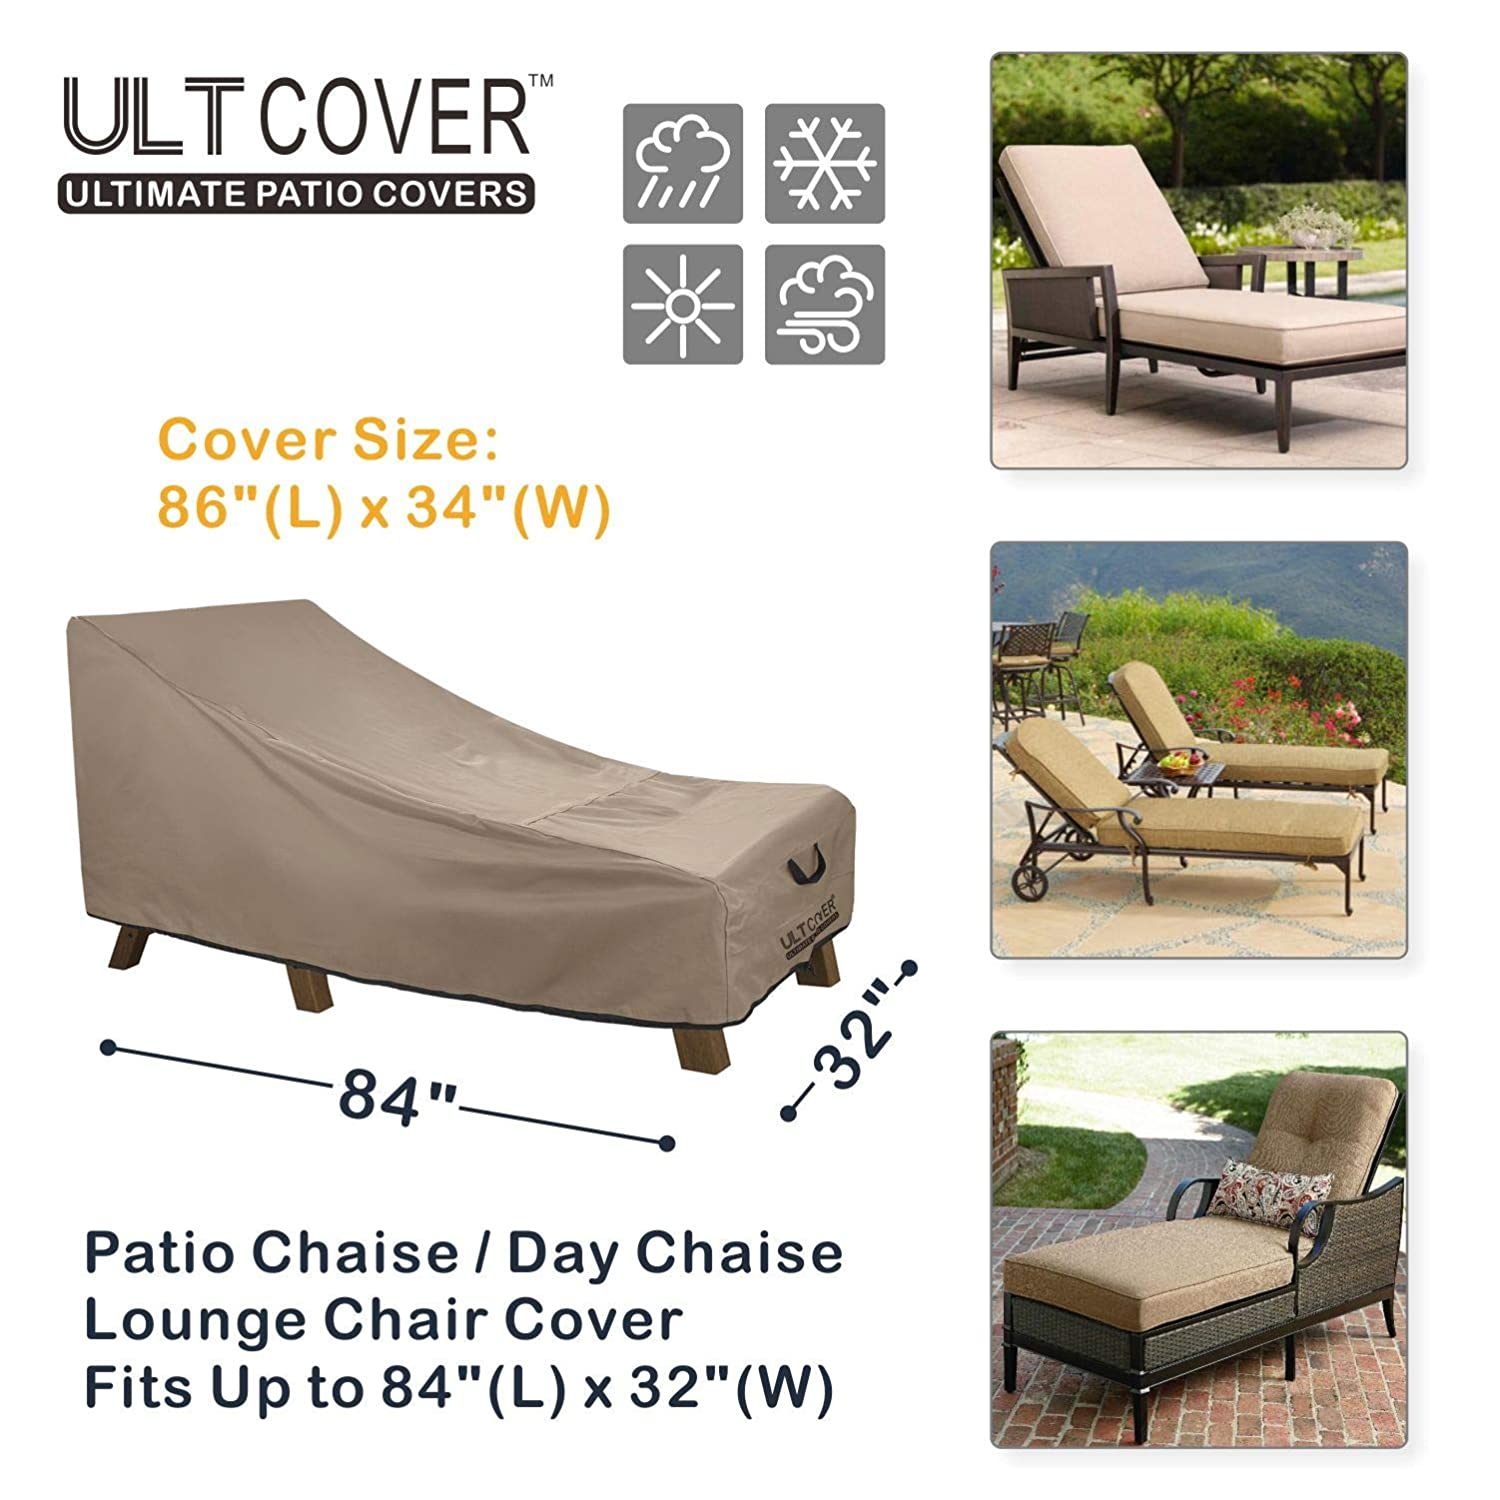 Magnificent Ultcover Waterproof Patio Lounge Chair Cover Heavy Duty Outdoor Chaise Lounge Covers 84L X 32W X 32H Inch Alphanode Cool Chair Designs And Ideas Alphanodeonline